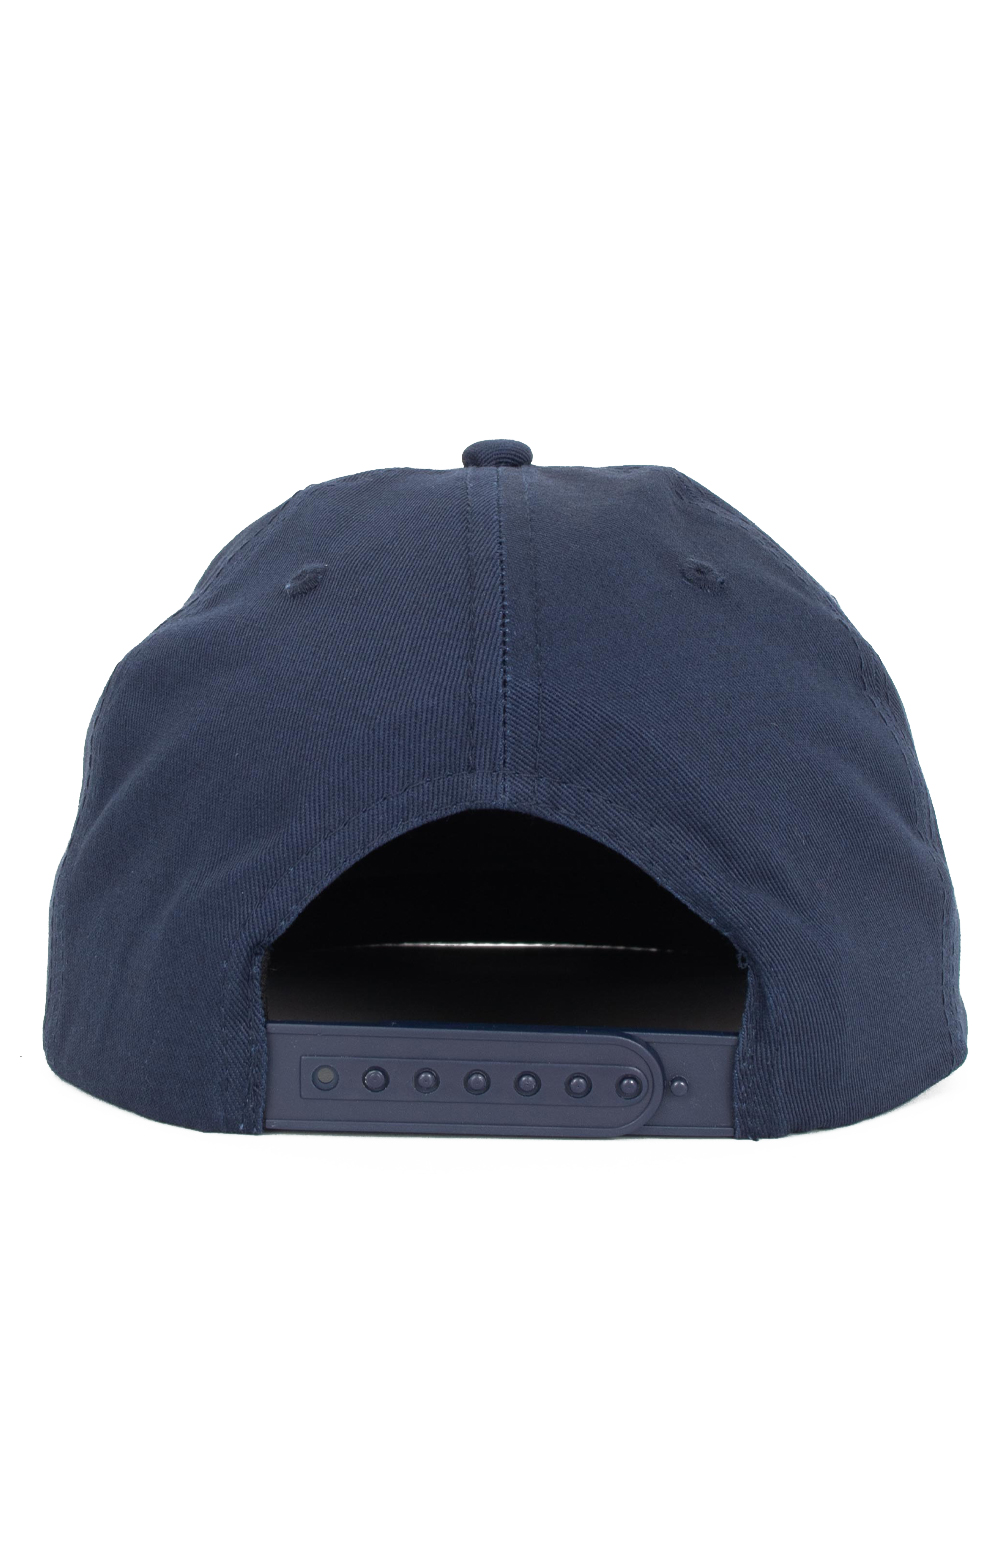 Flame Rope Snap-Back Hat - Navy Blue 3